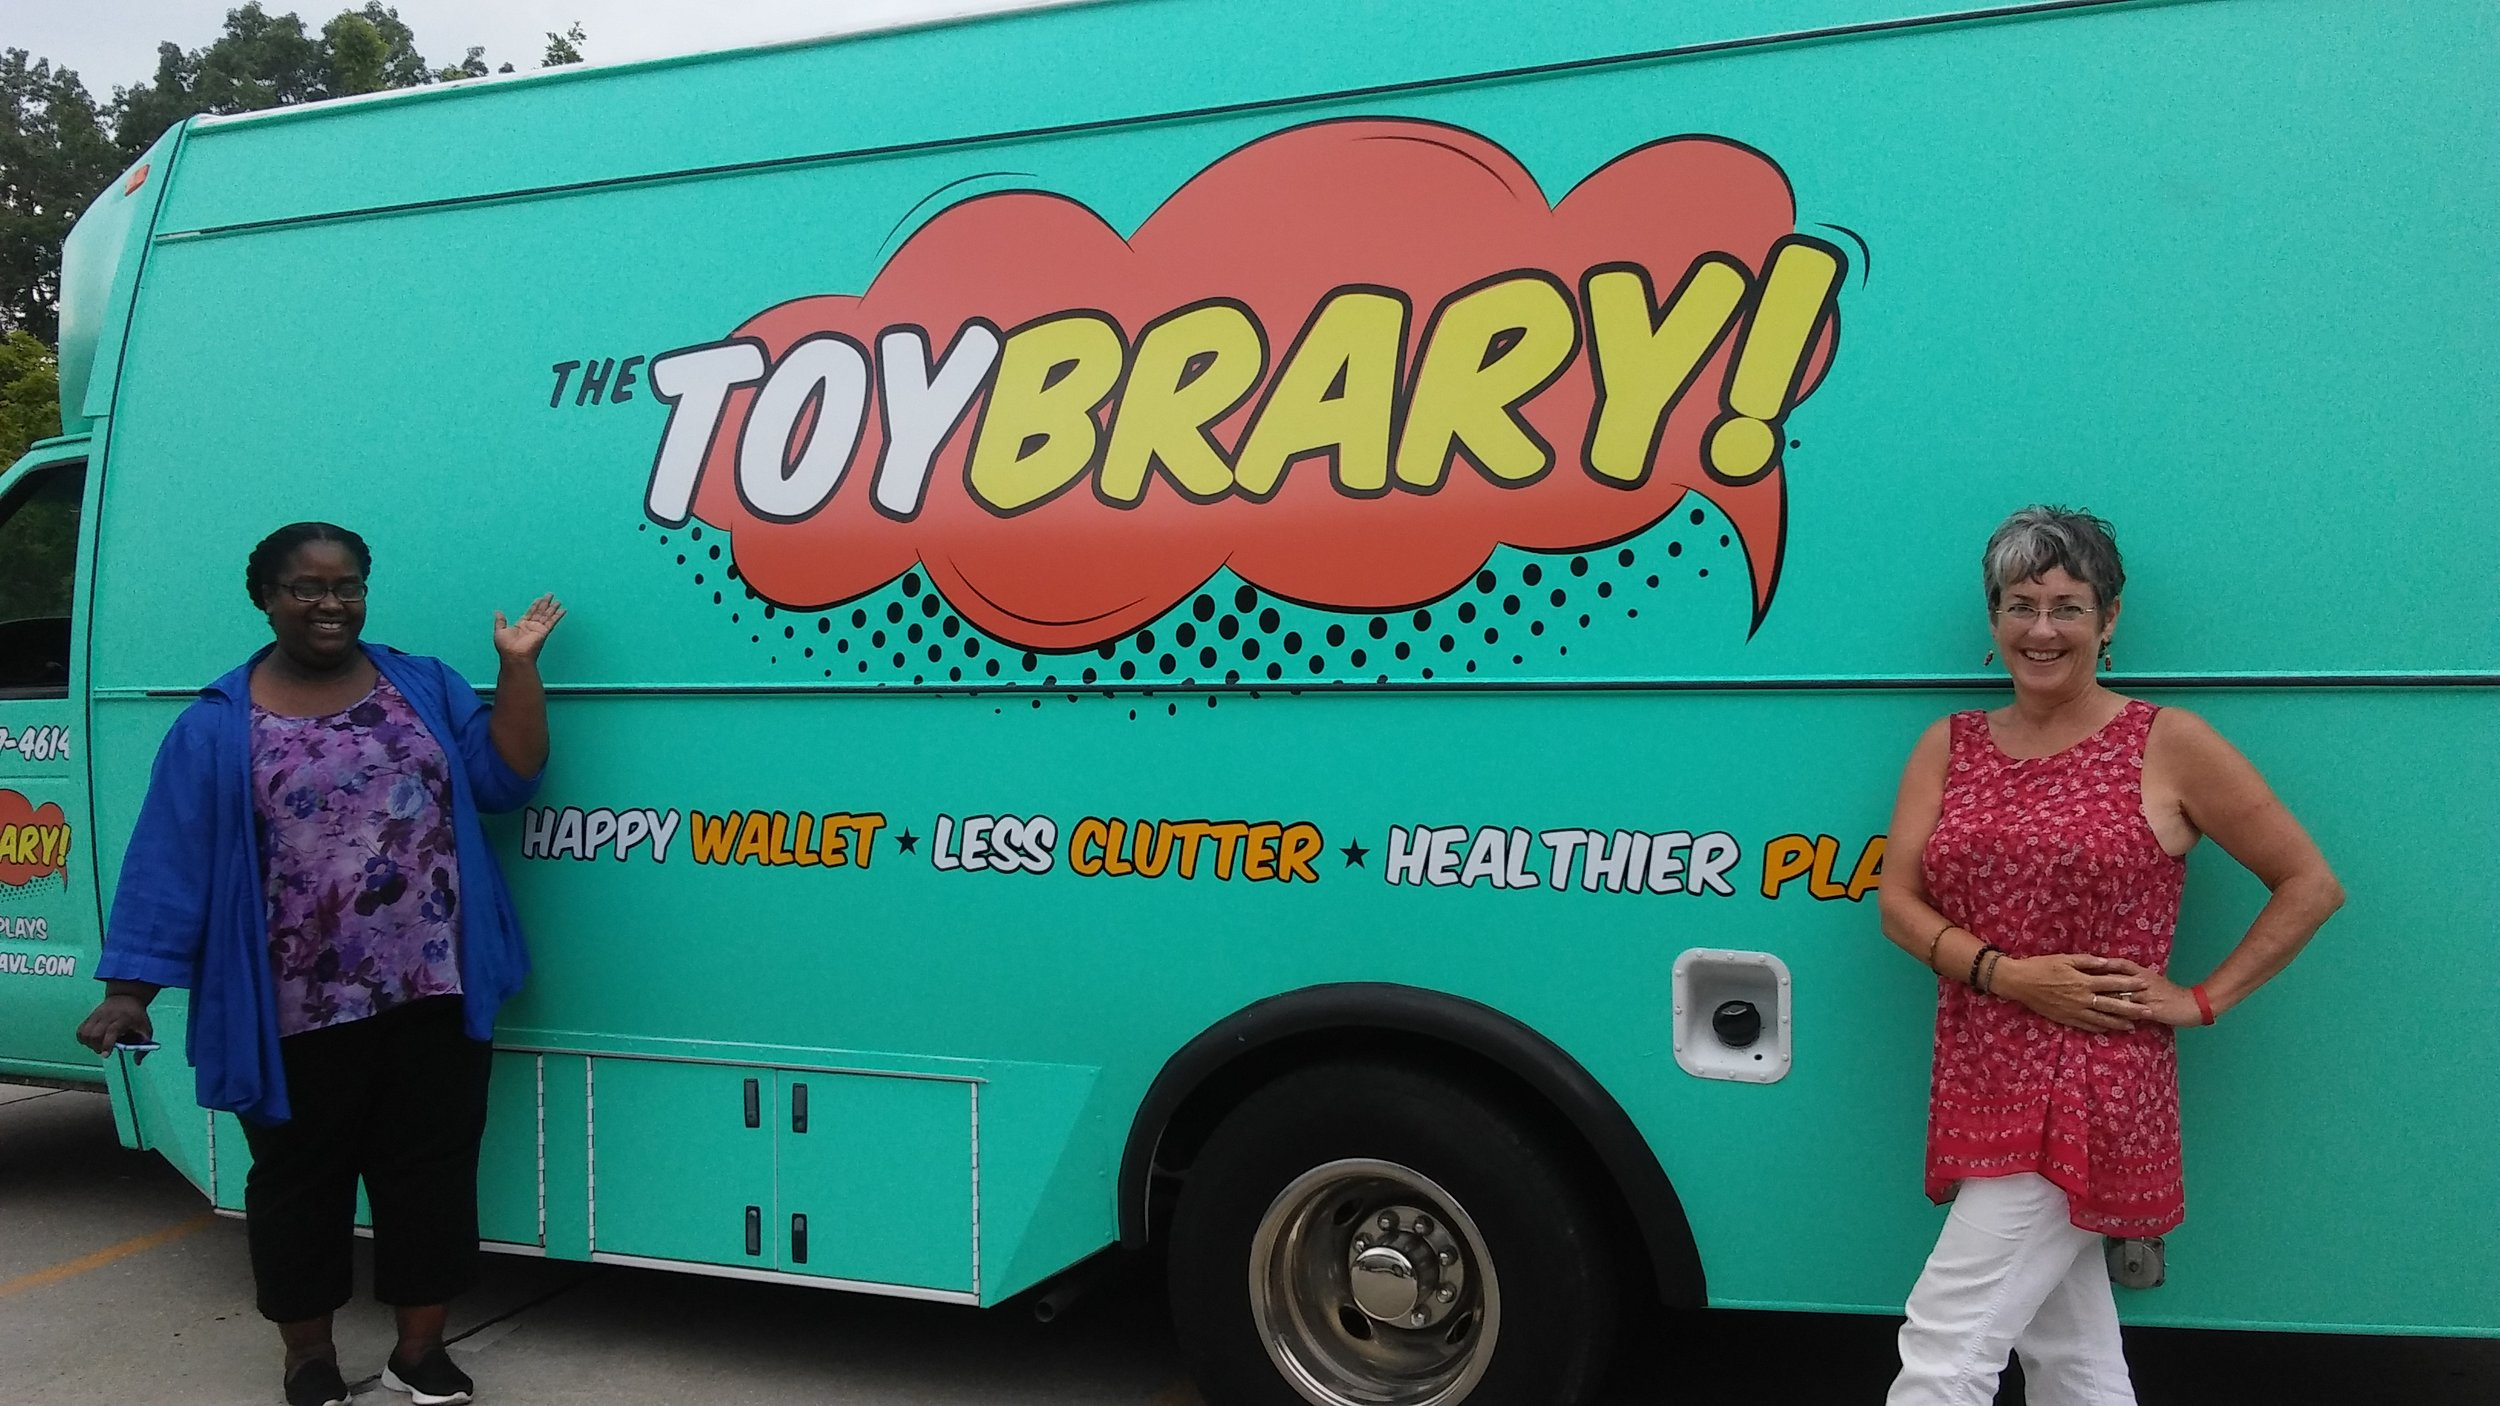 - The Toybrary of Asheville is thrilled to announce our mobile unit will be cruising through our community encouraging us all to unplug and play!